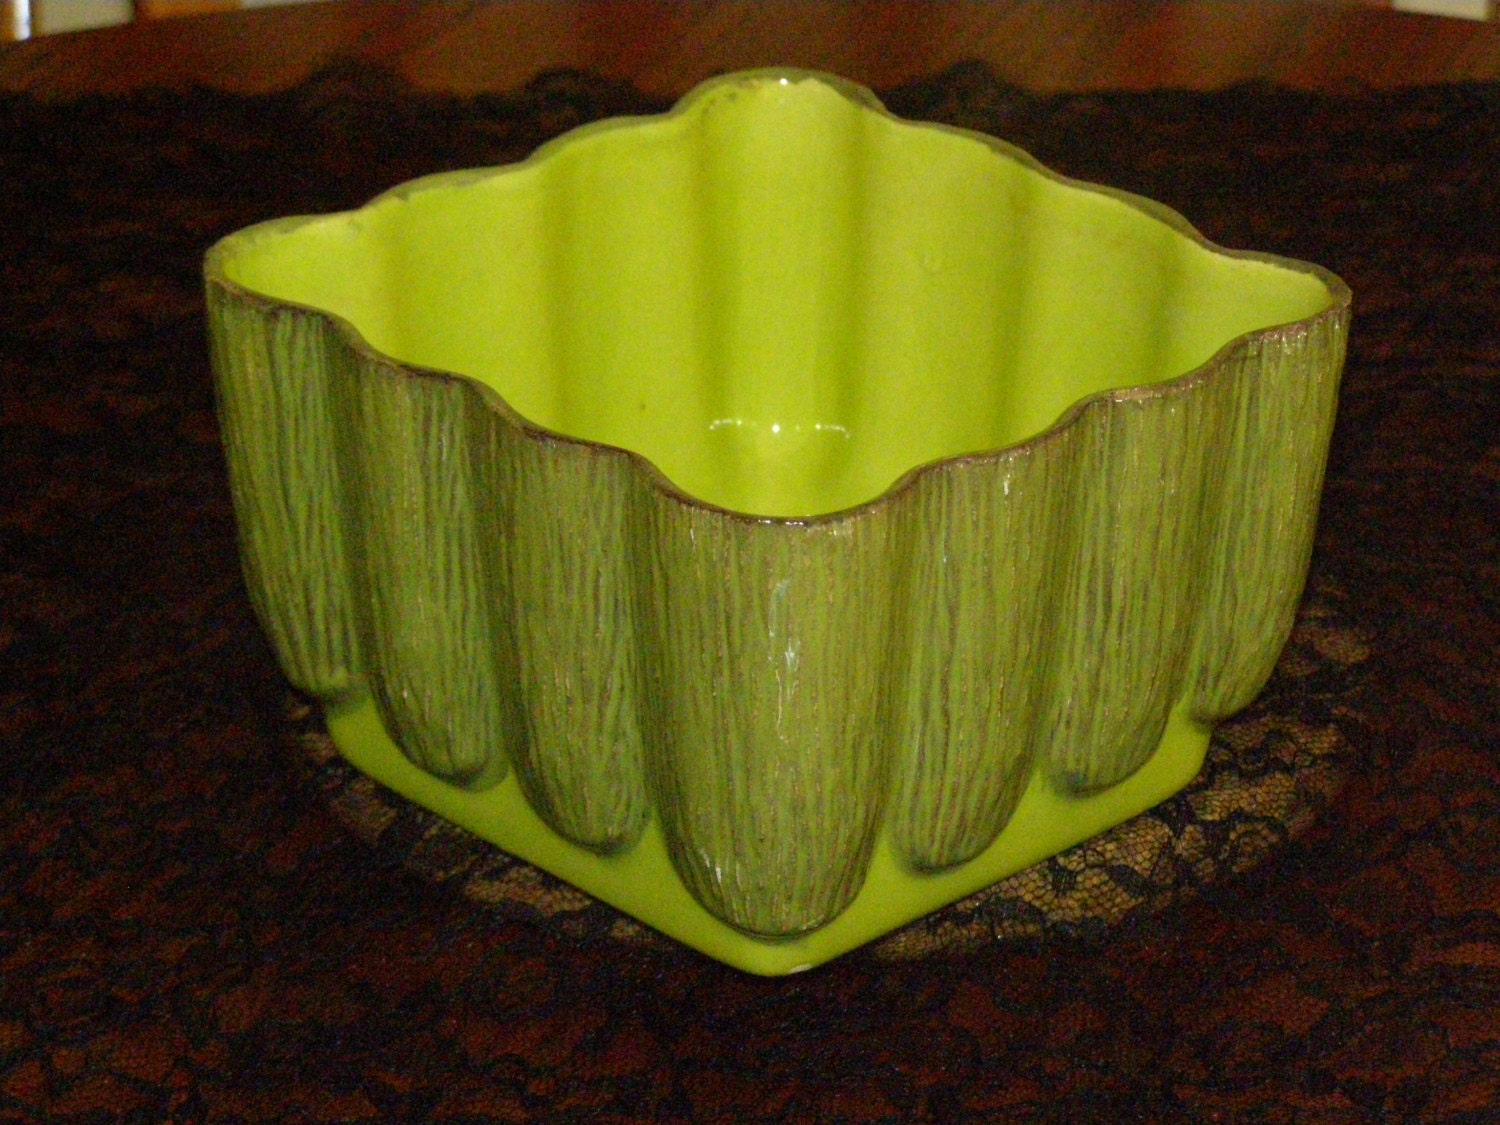 Vintage Retro Bamboo Ceramic Planter Hand Painted Greens Brown - parkie2